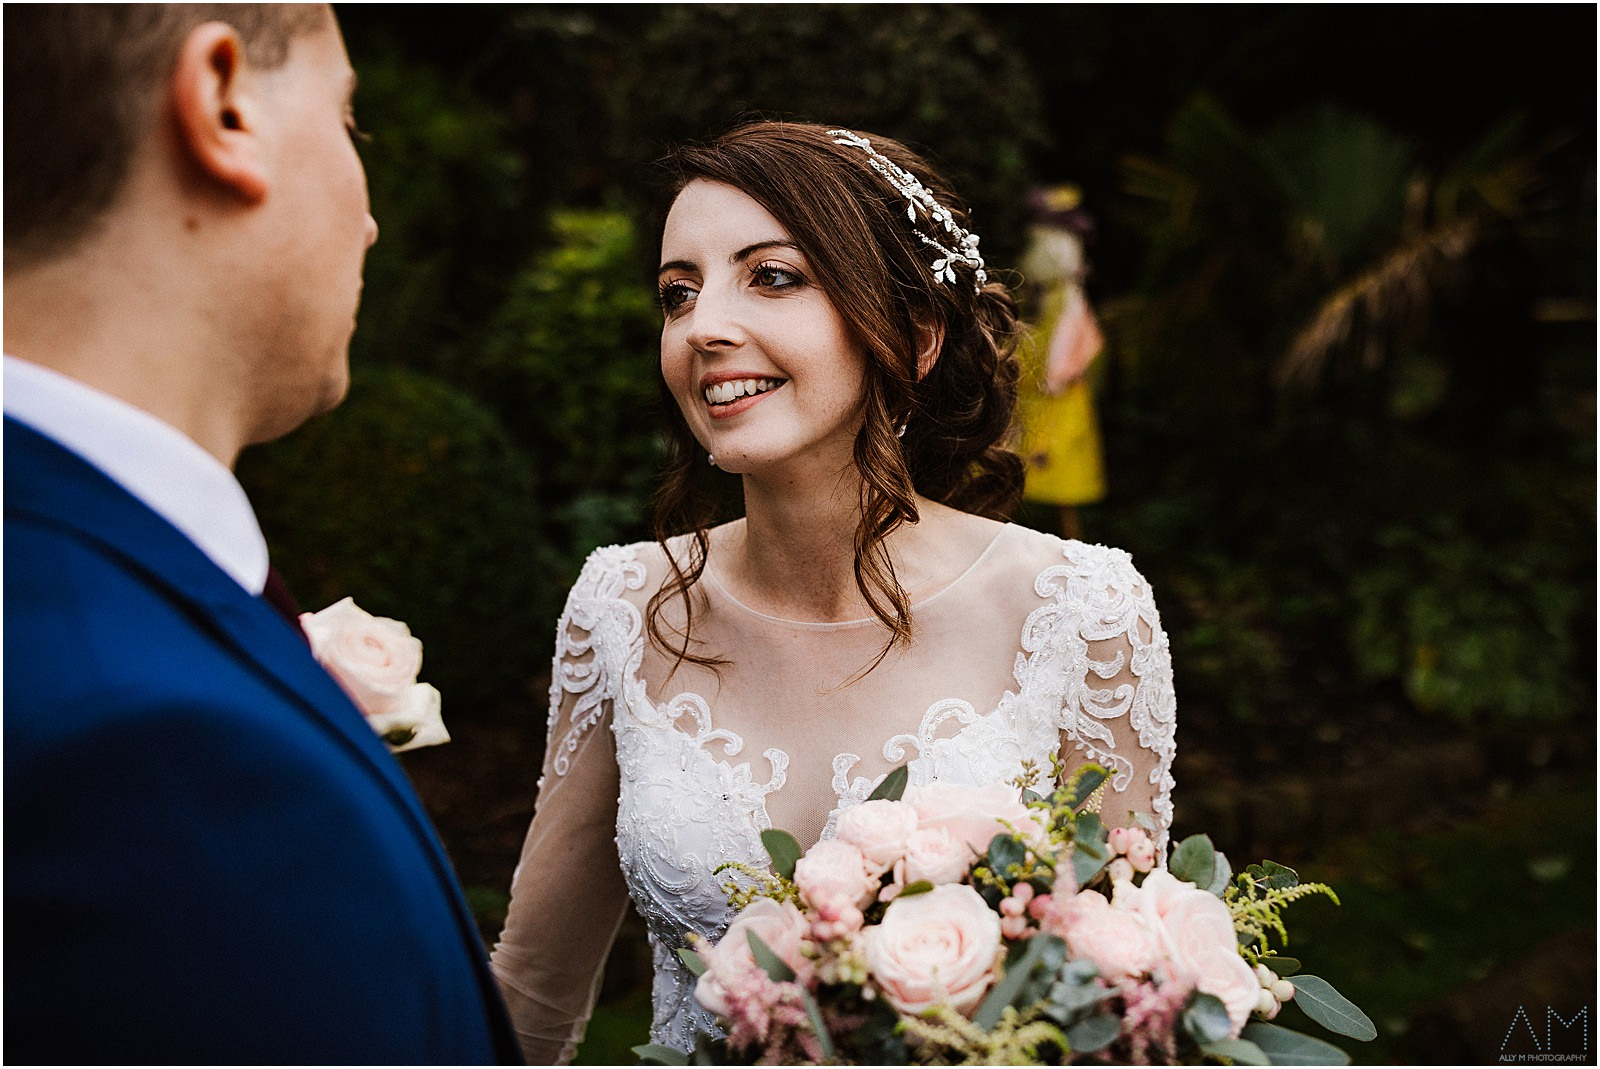 Bride looking at her new husband